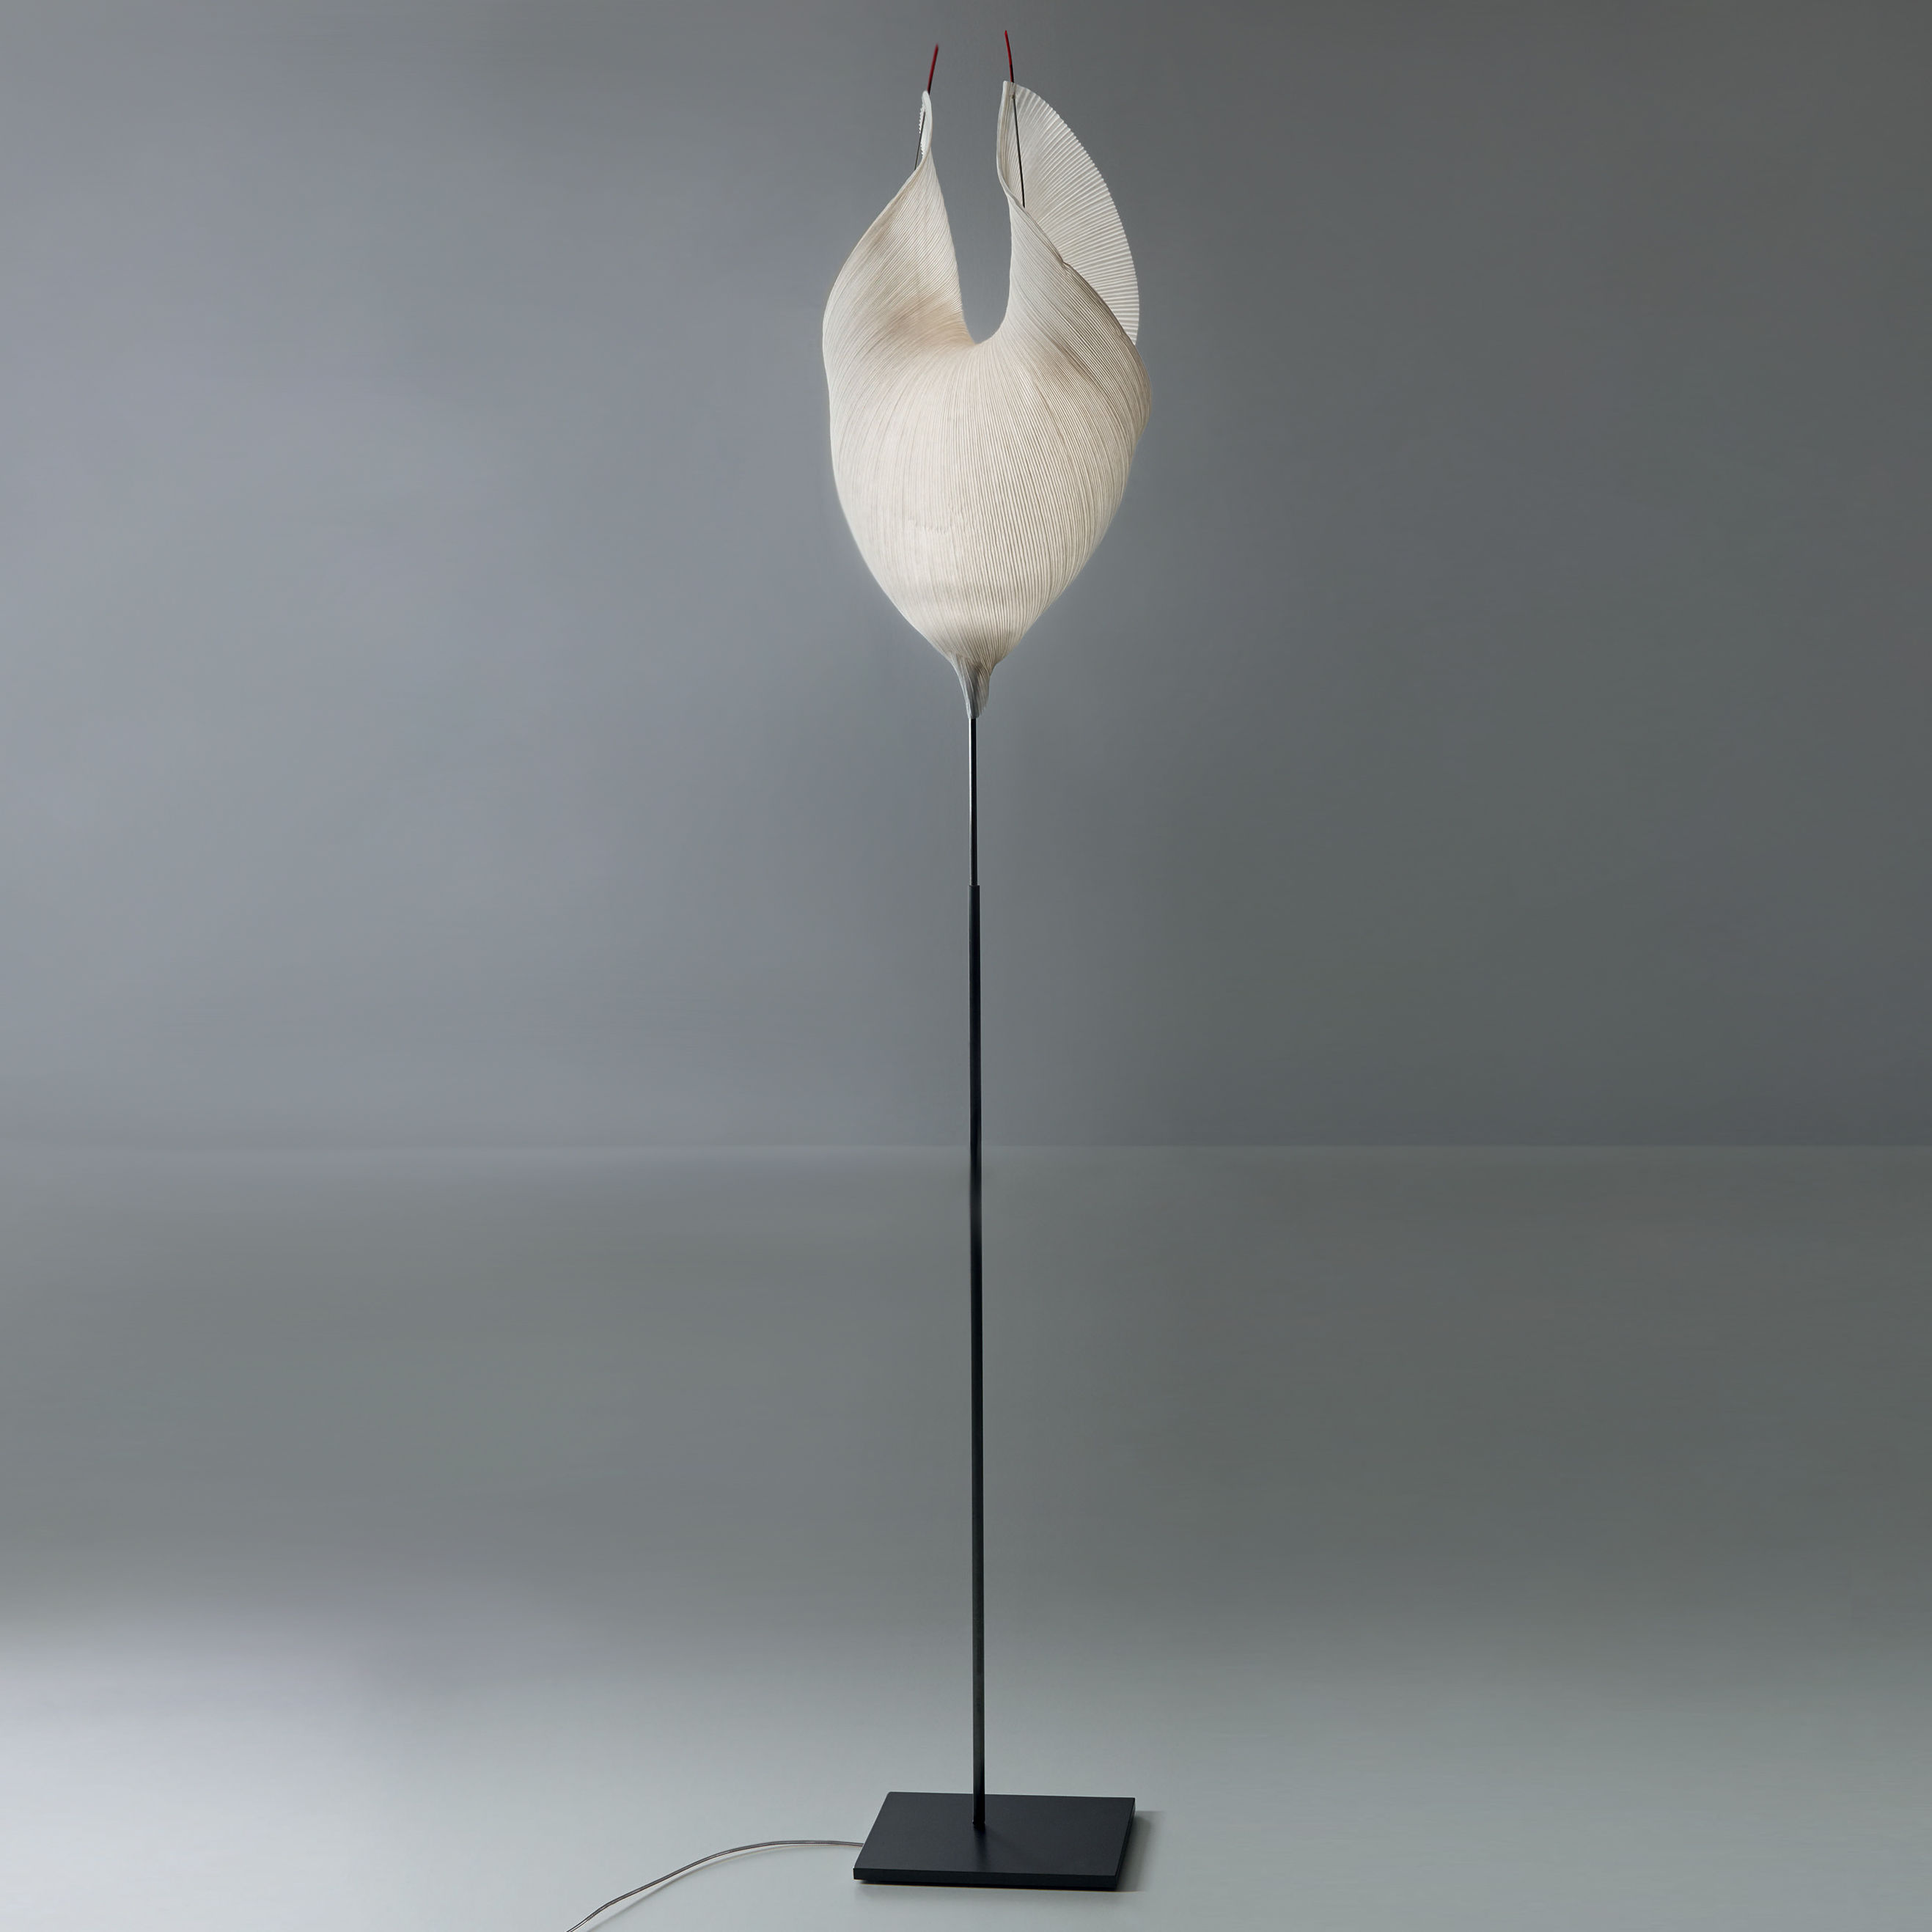 Lighting - Floor lamps - The MaMo Nouchies LED Floor lamp - / Babadul by Ingo Maurer - Beige - Japanese paper, Lacquered metal